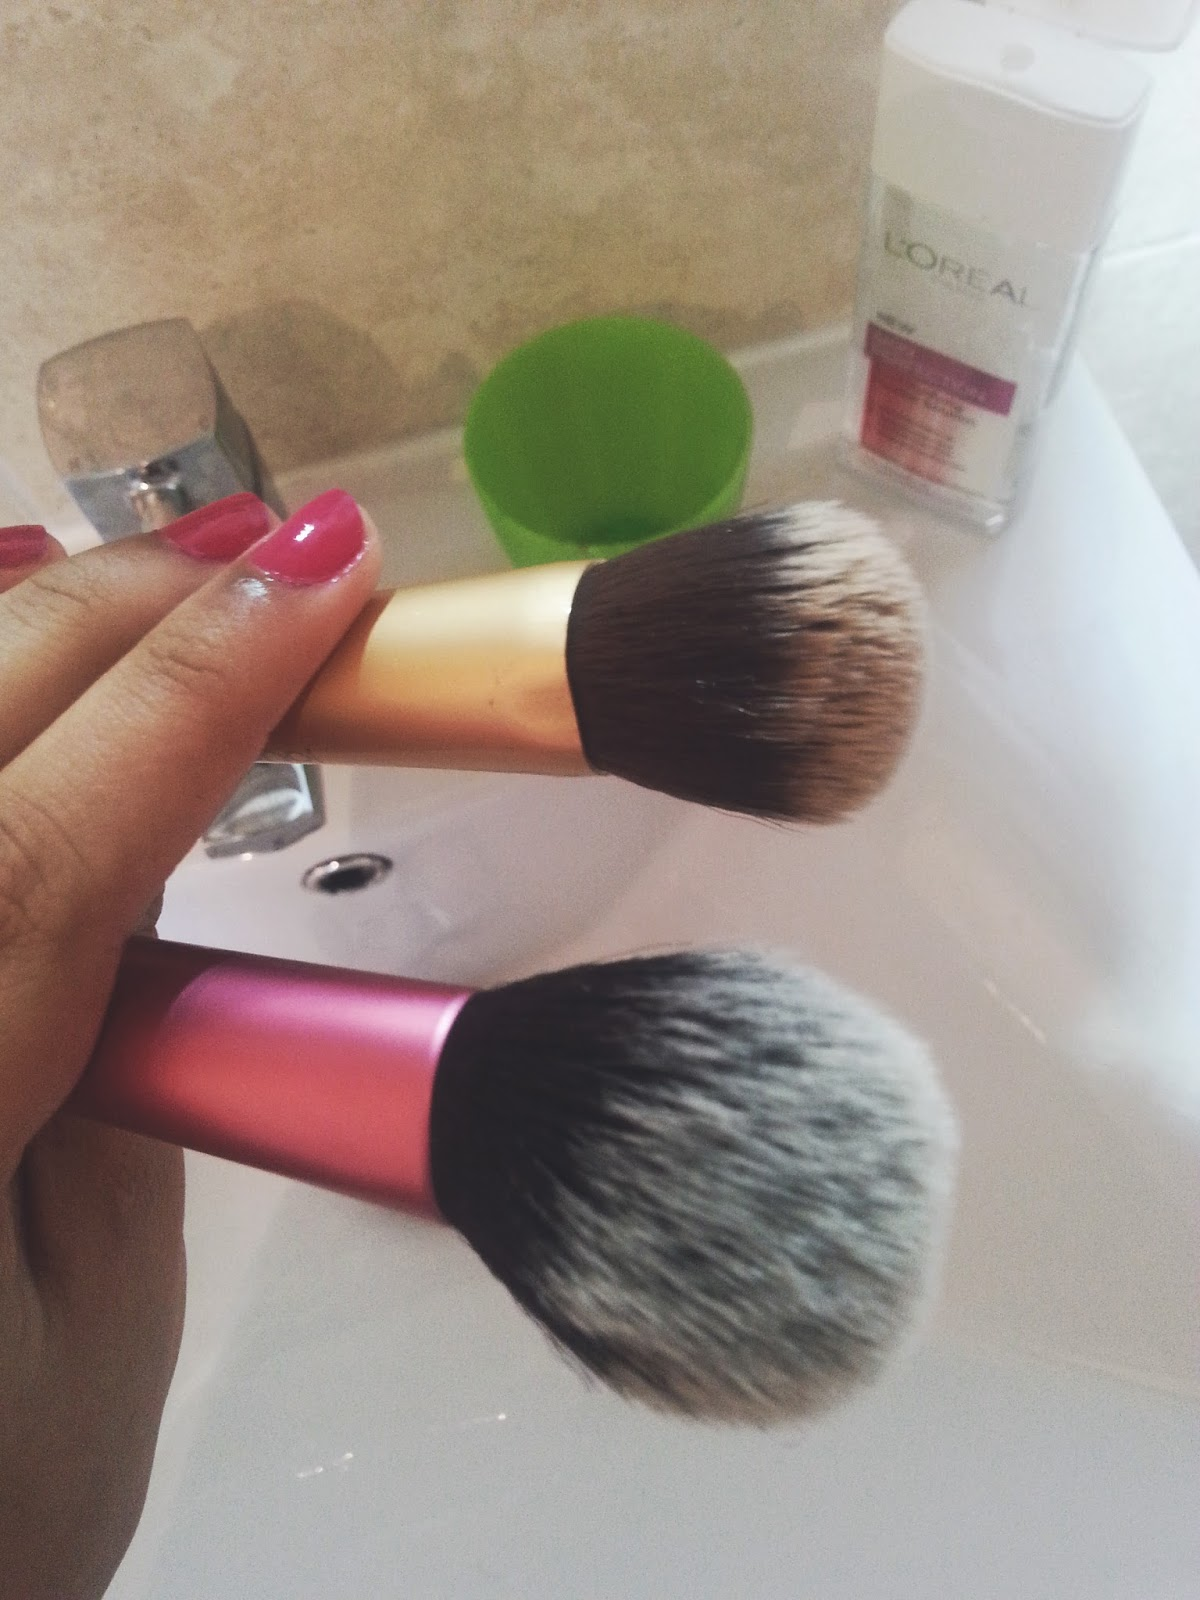 Washing Makeup Brushes With Micellar Water?!